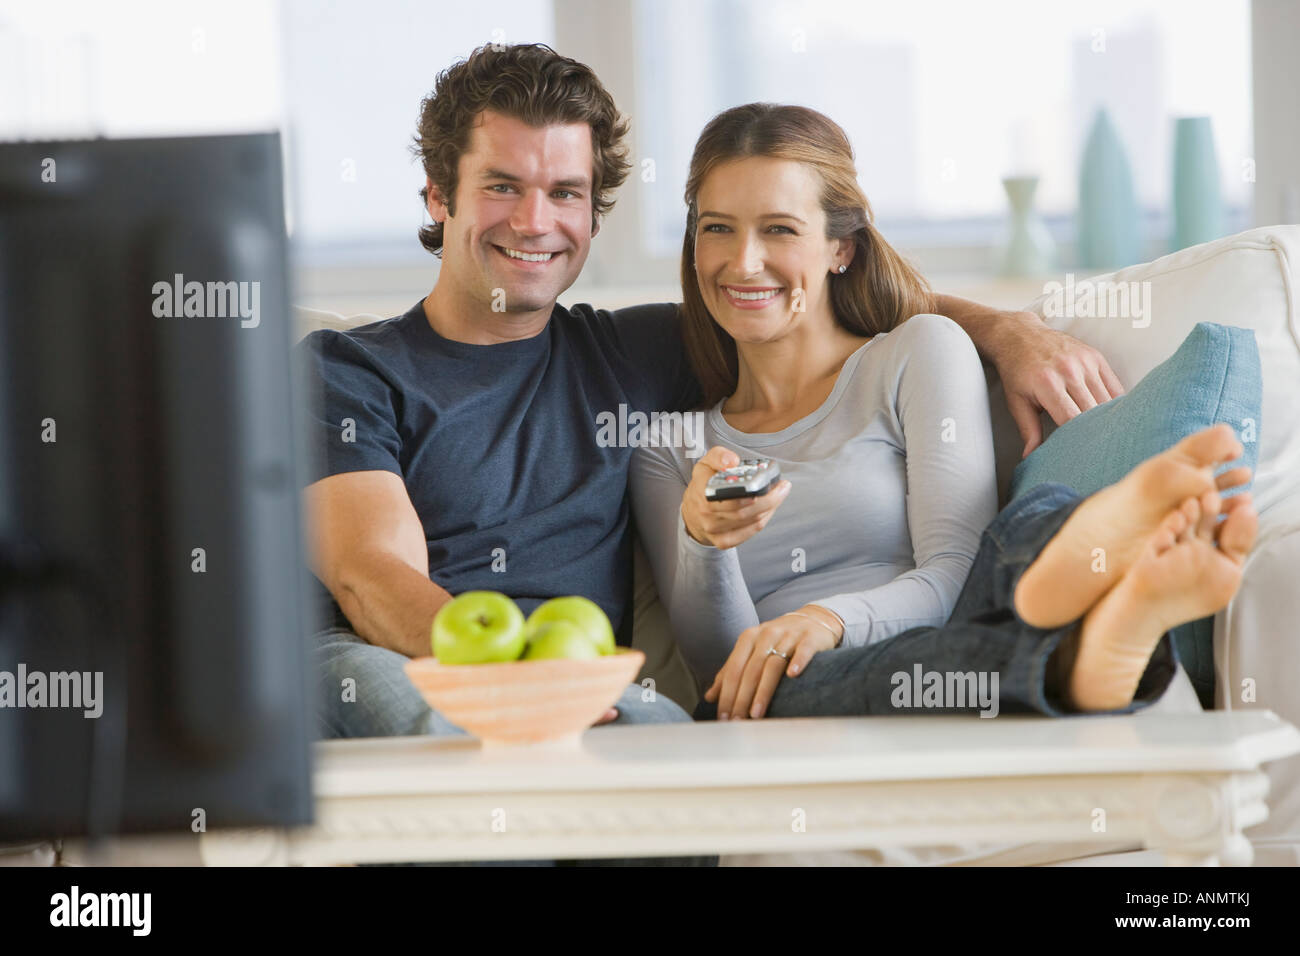 Couple watching television on sofa - Stock Image